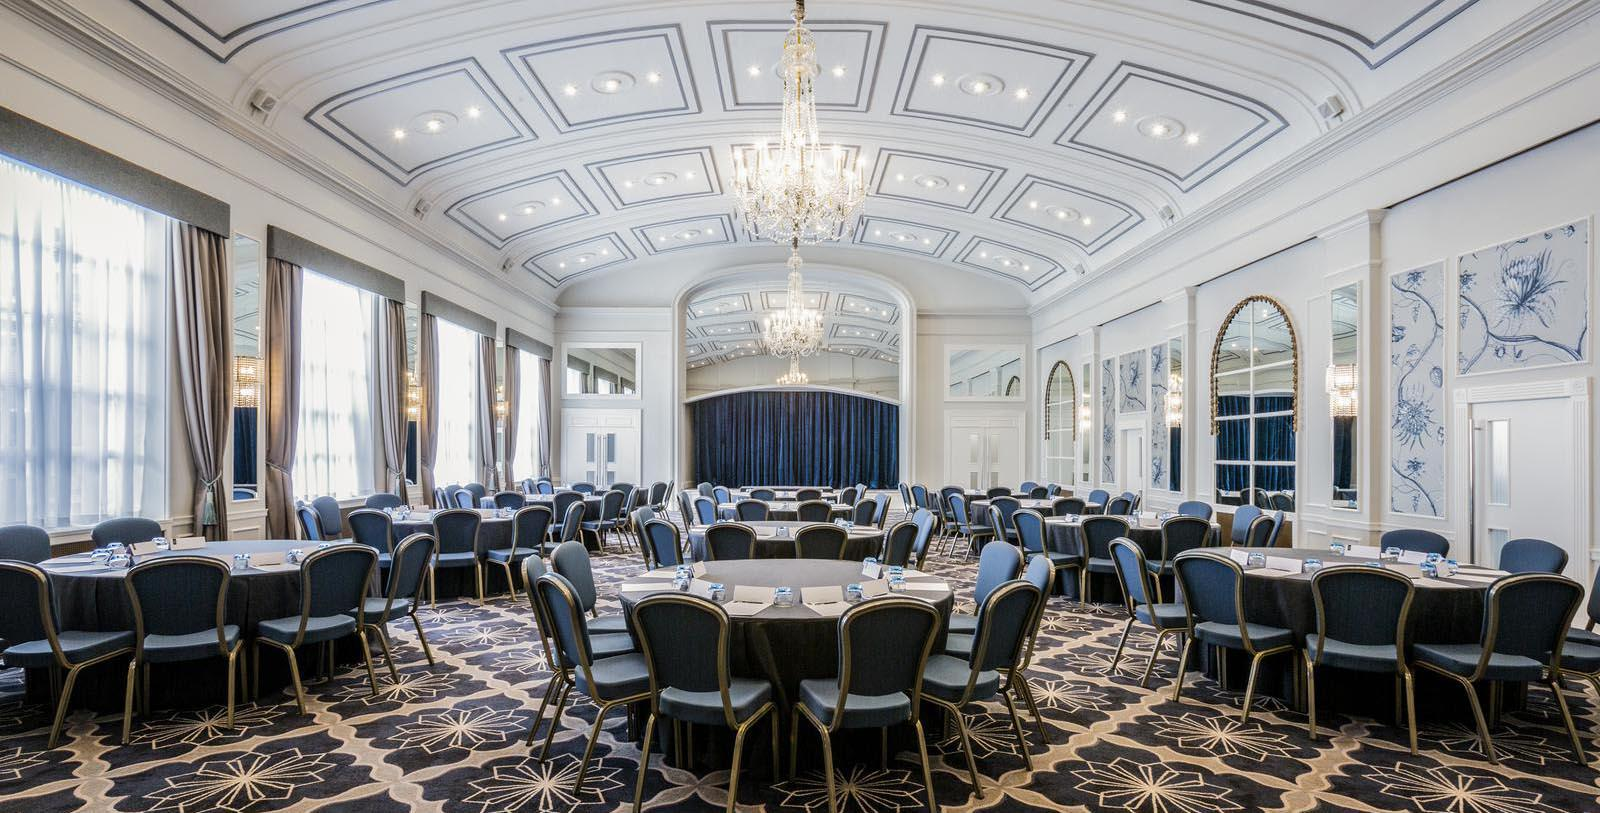 Image of ballroom set up for event Castle Hotel Windsor, 1528, Member of Historic Hotels Worldwide, in London, United Kingdom, Experience